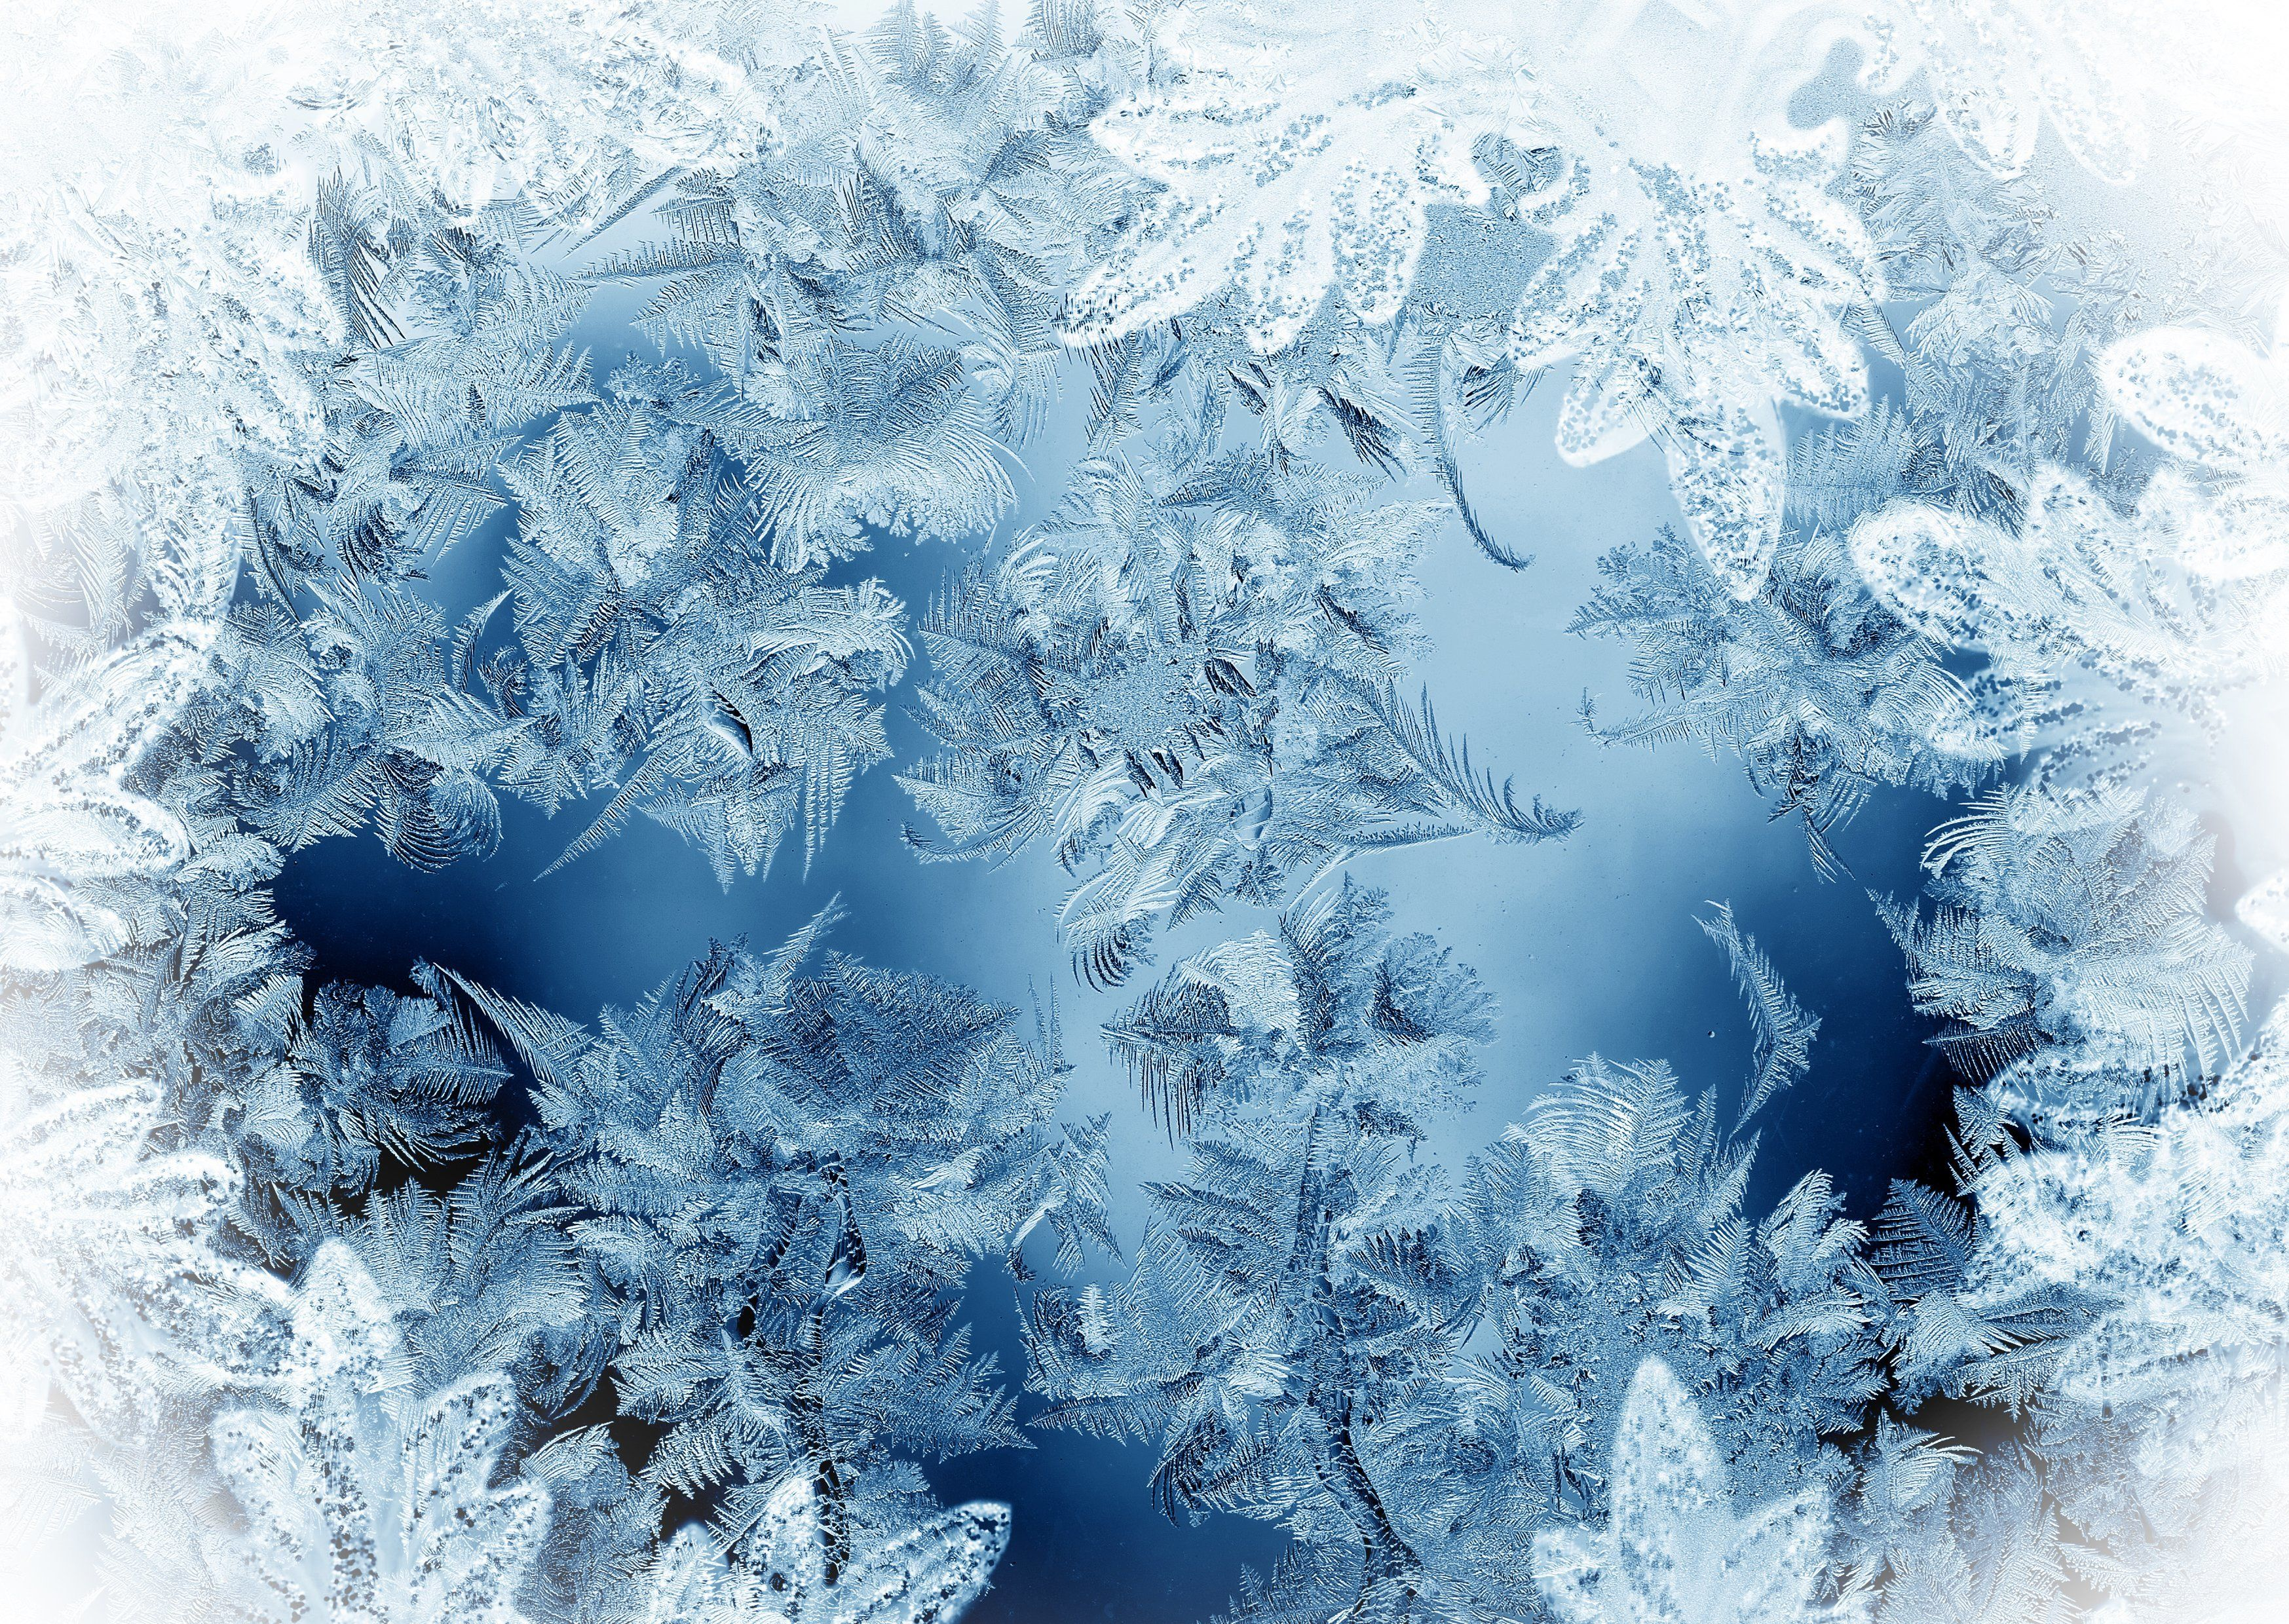 texture ice pattern frost wallpaper background winter